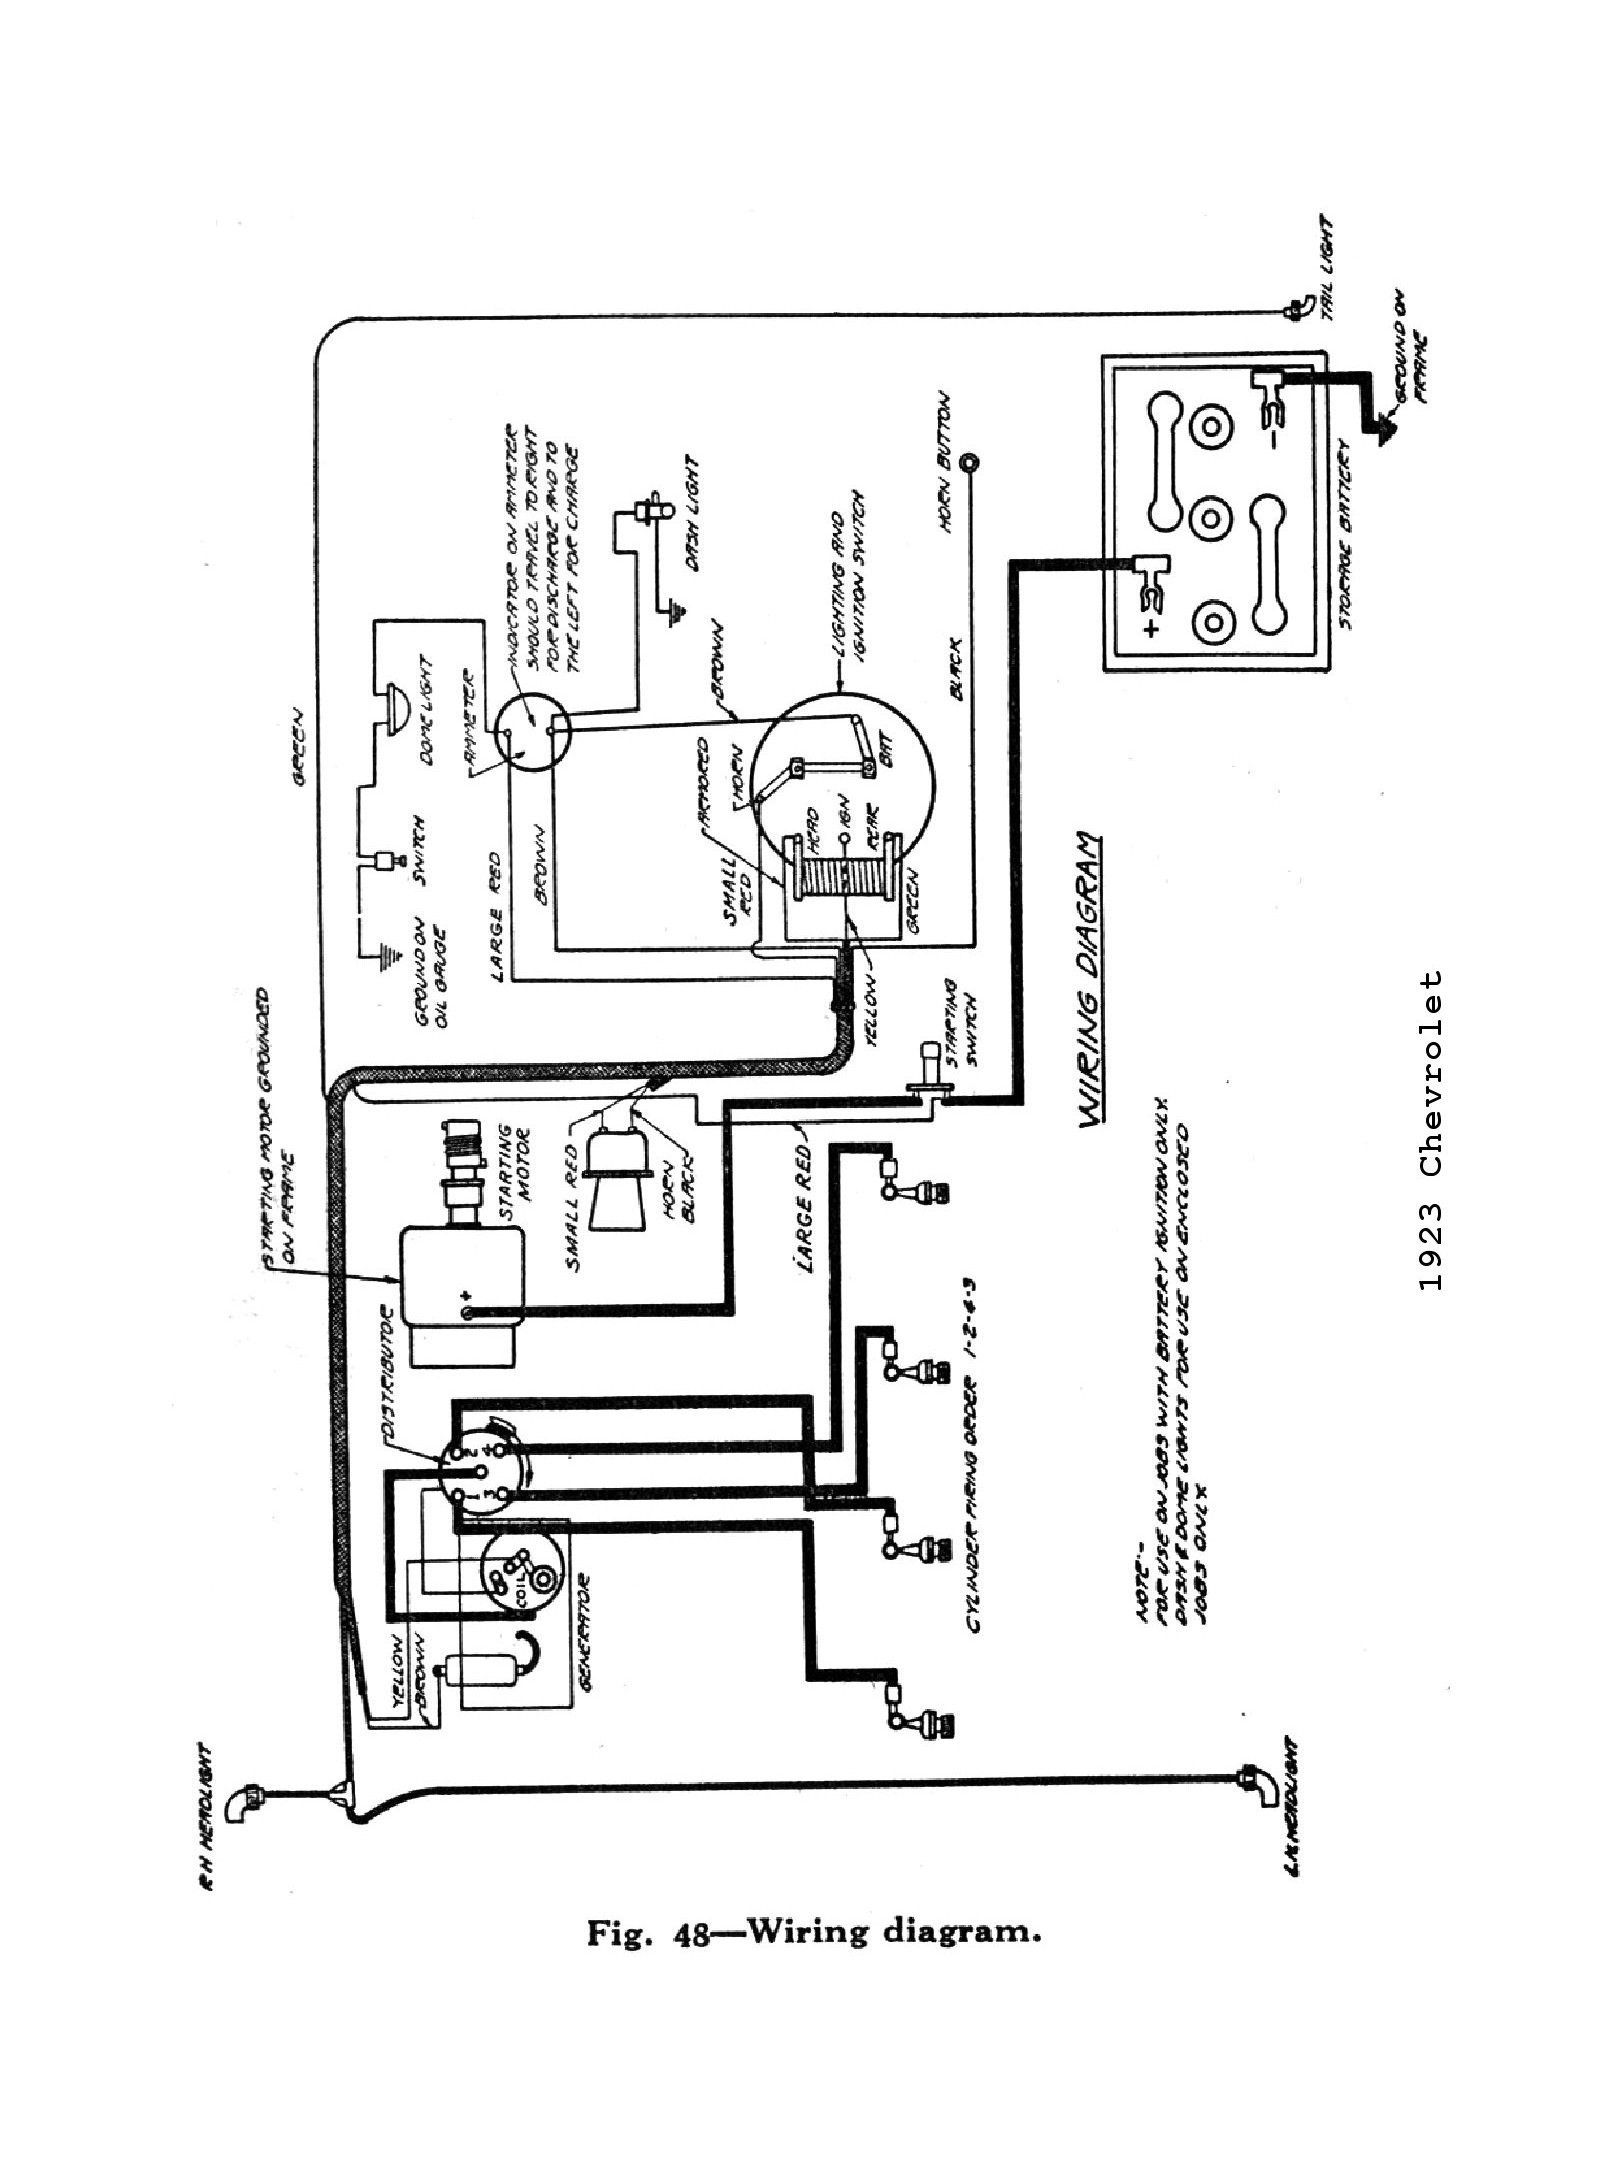 hight resolution of 1960 chevy truck wiring diagram wiring diagram source chevy wiring schematics 66 chevy heater wiring diagram free picture